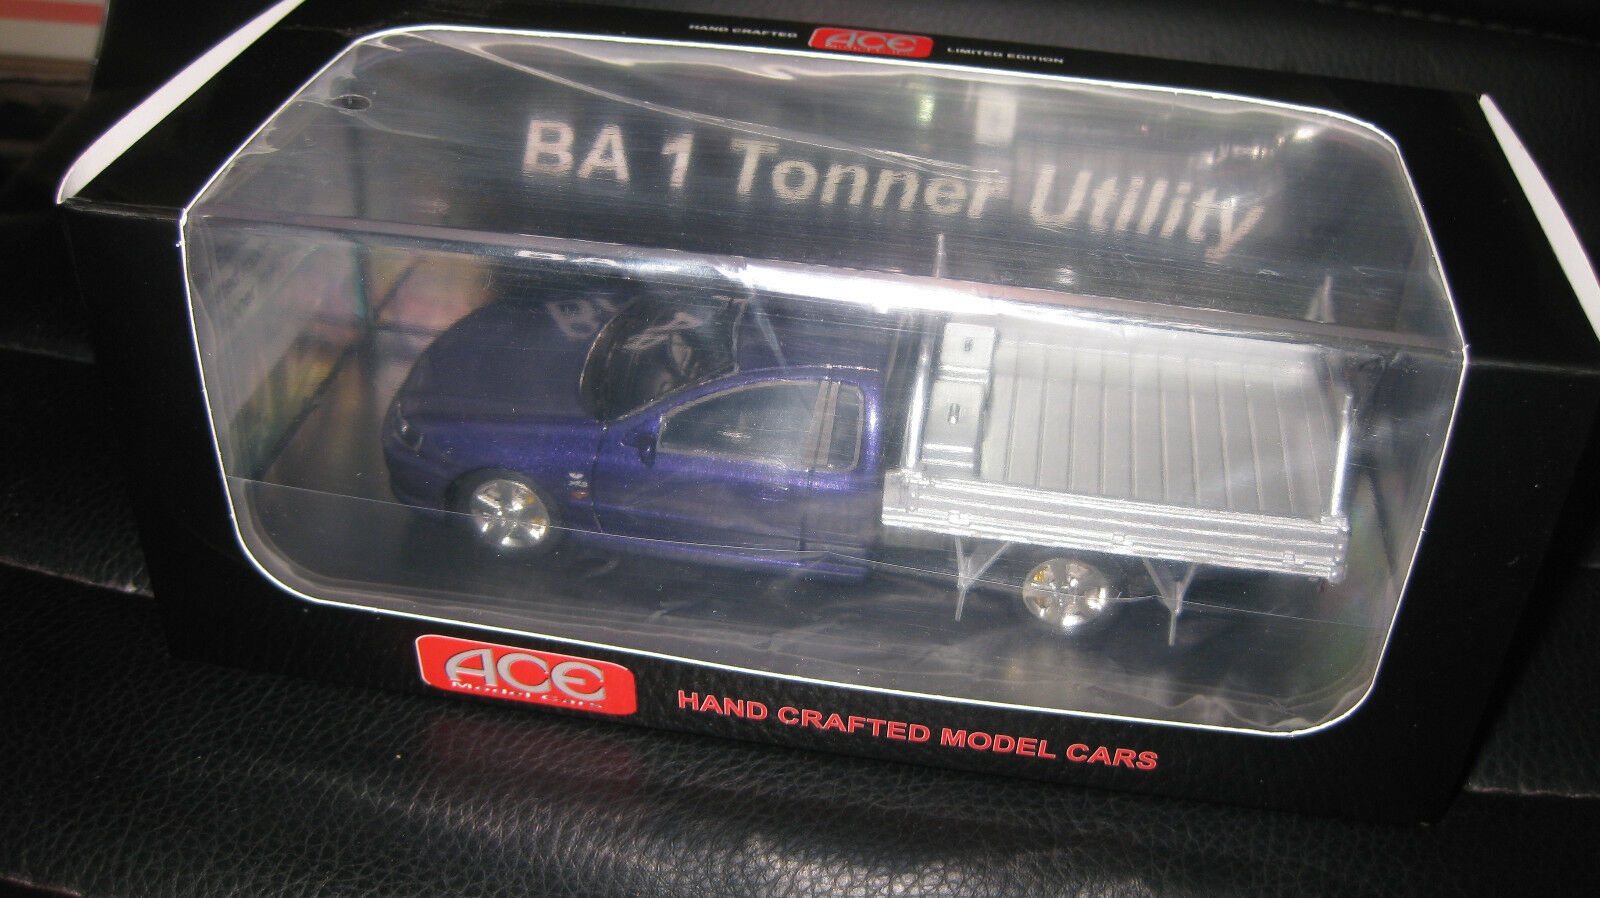 1 43 ACE MODEL CARS FORD FALCON BA 1 TONNER UTE VIPER lila  LTD EDITION